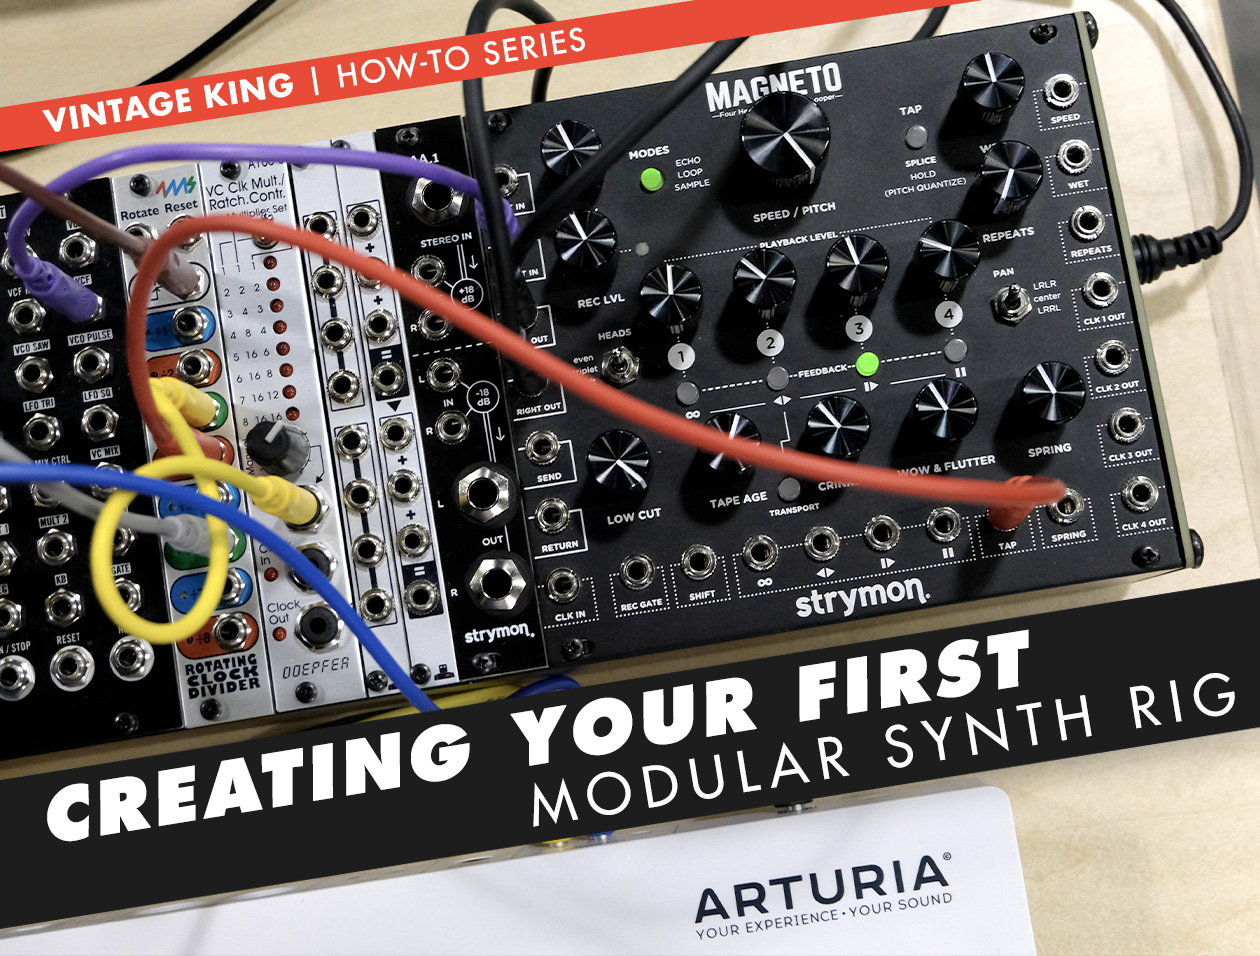 Creating Your Own Modular Synth Rig